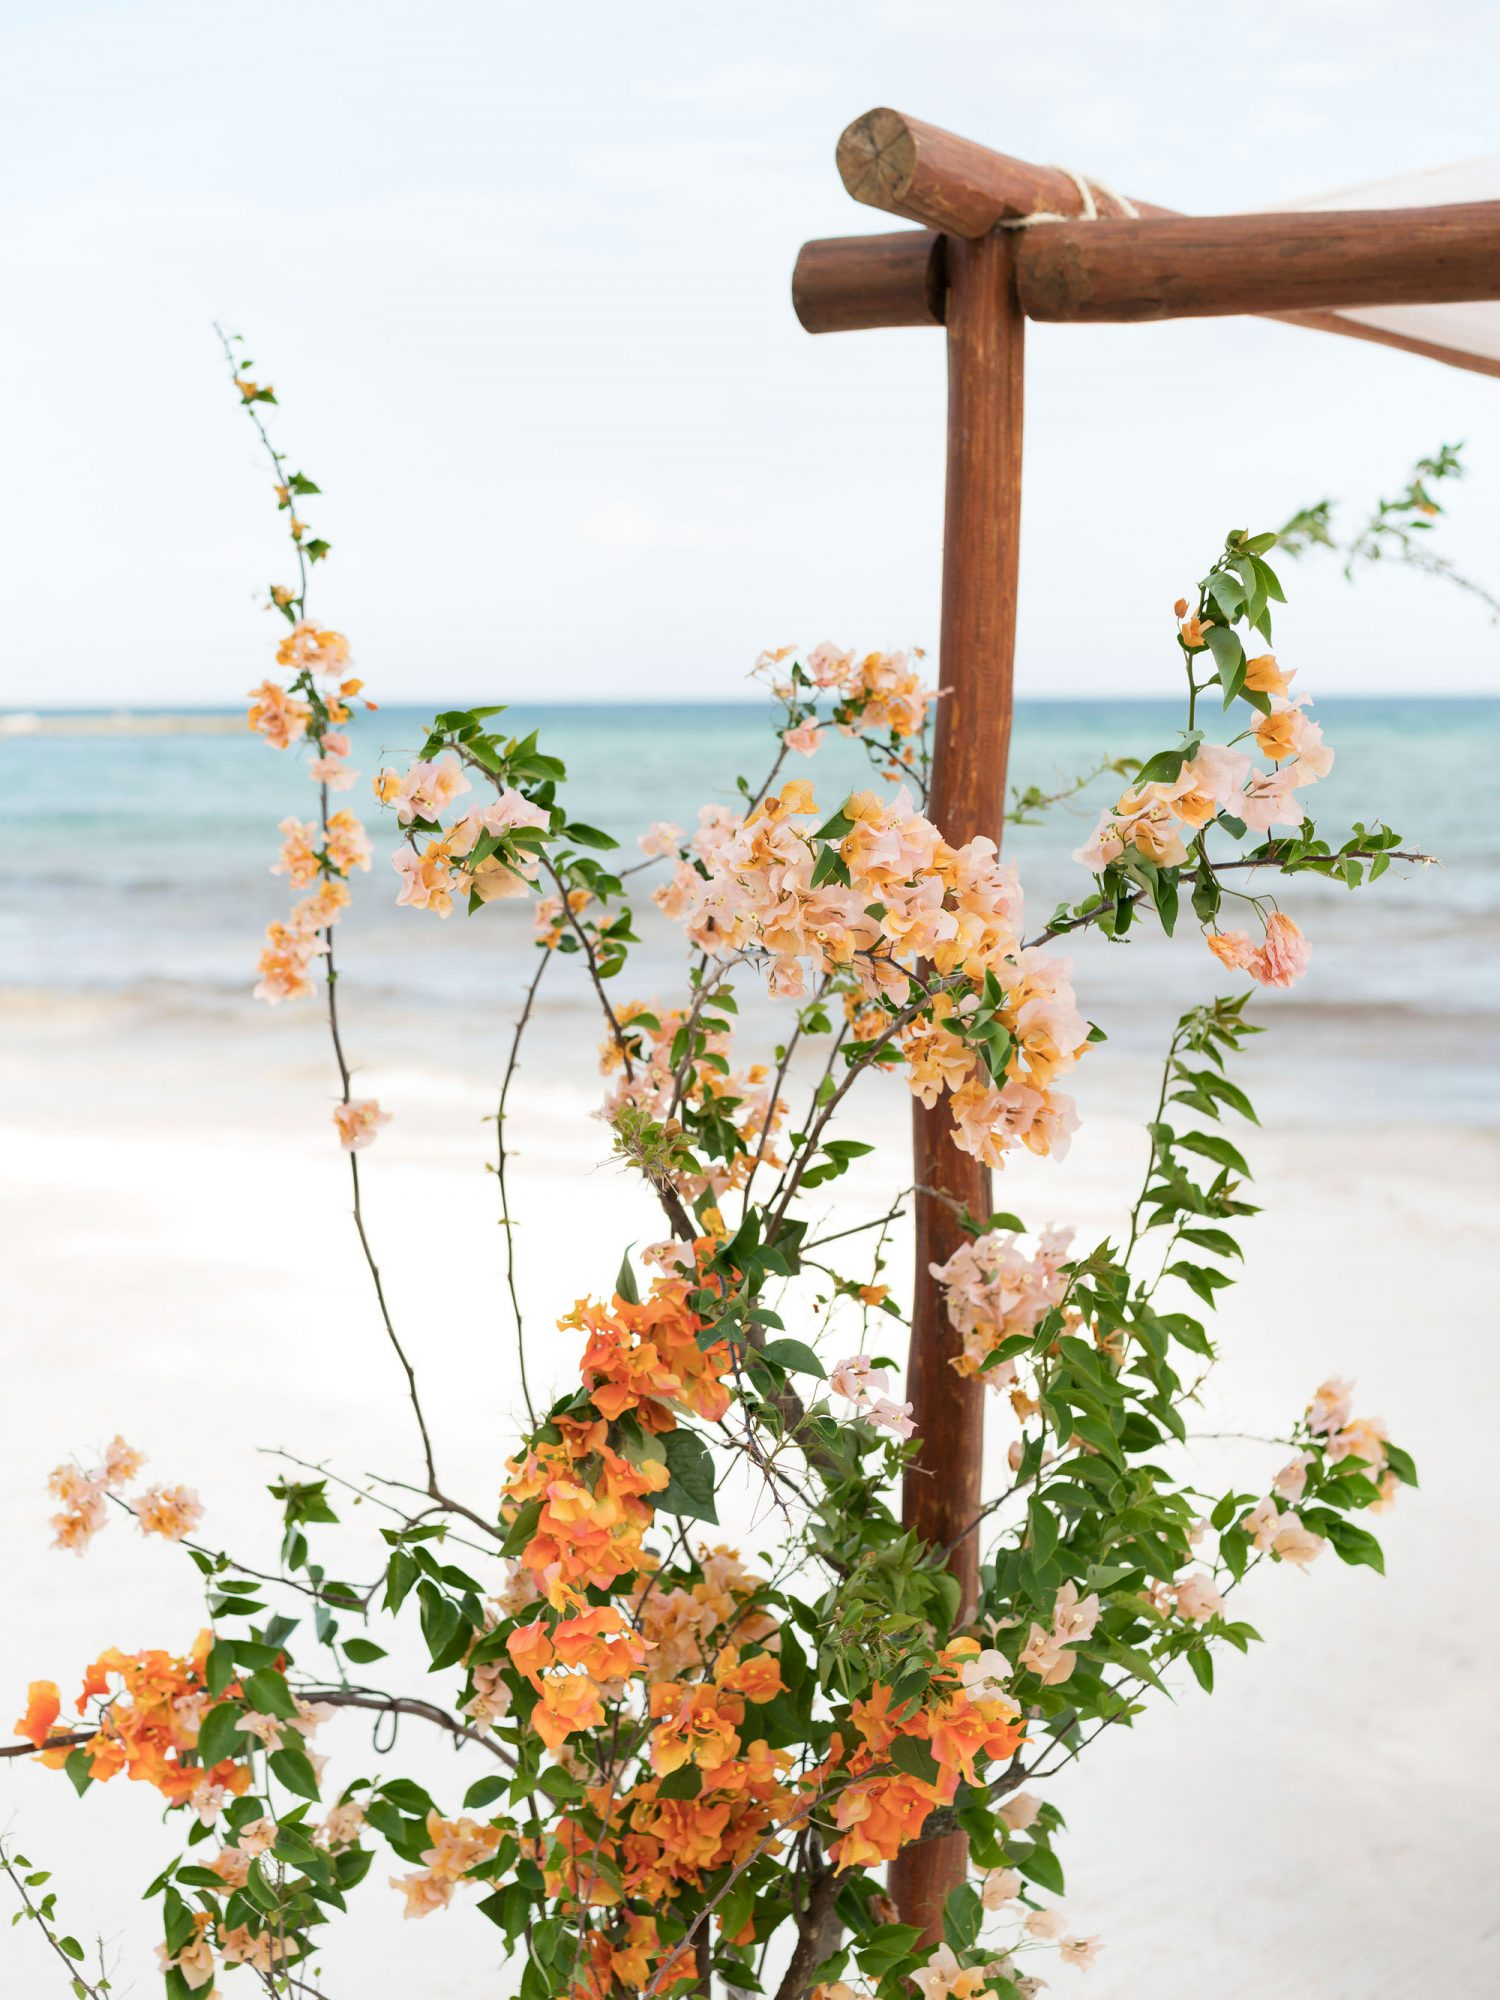 ariel trevor wedding tulum mexico beach chuppah bouganvillea